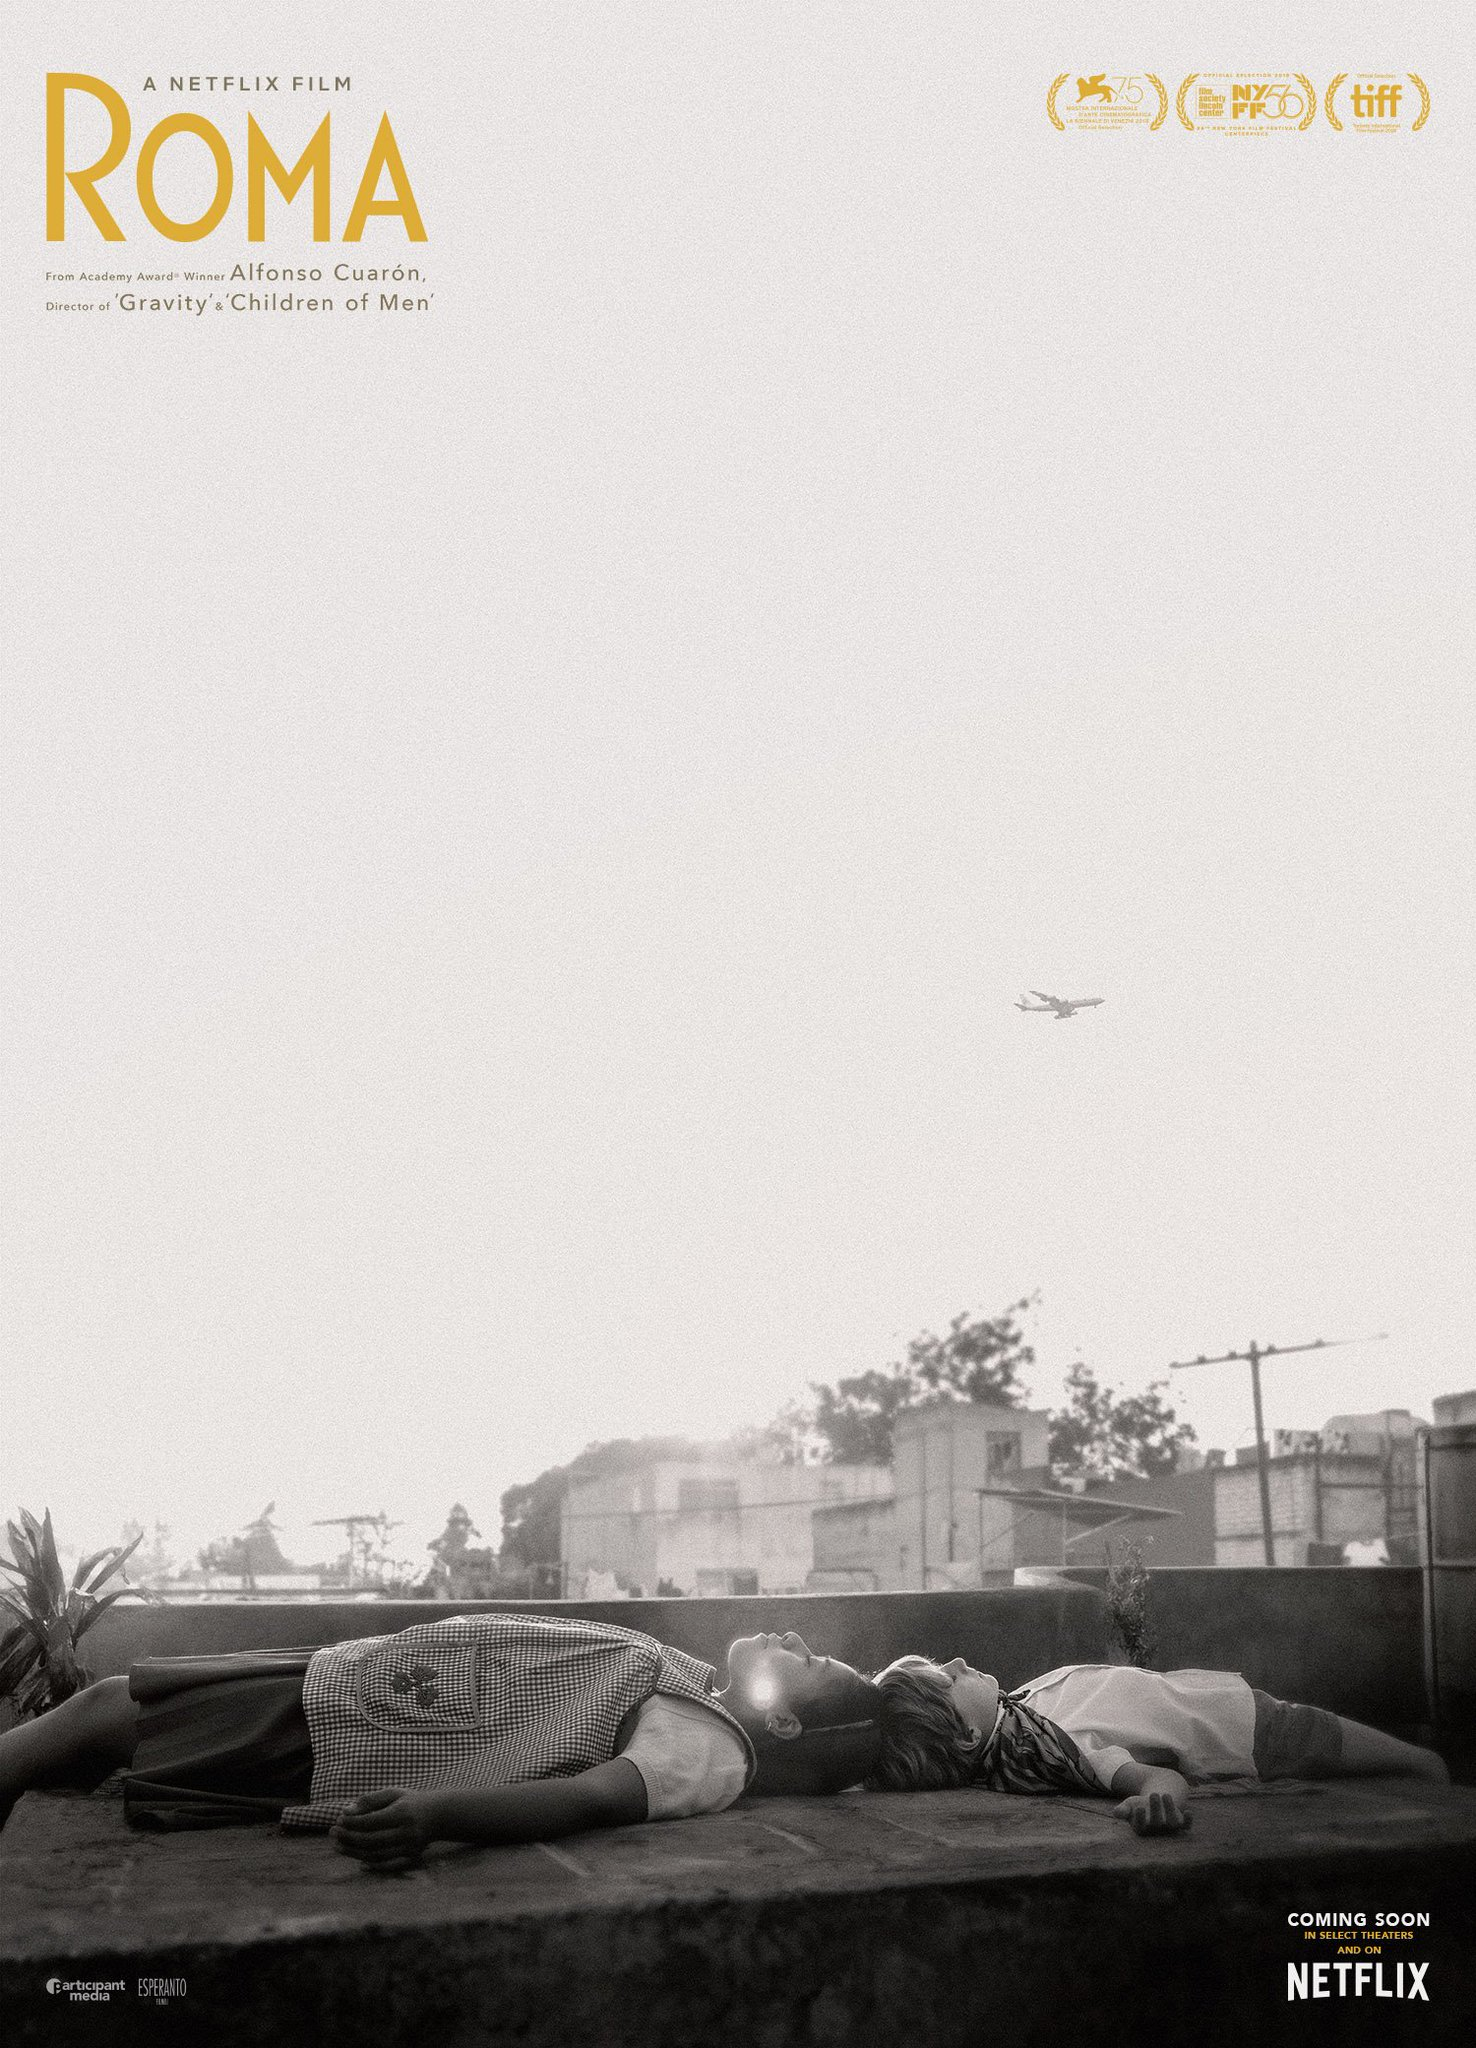 ROMA (2018) | Netflix | Directed by Alfonso Cuarón